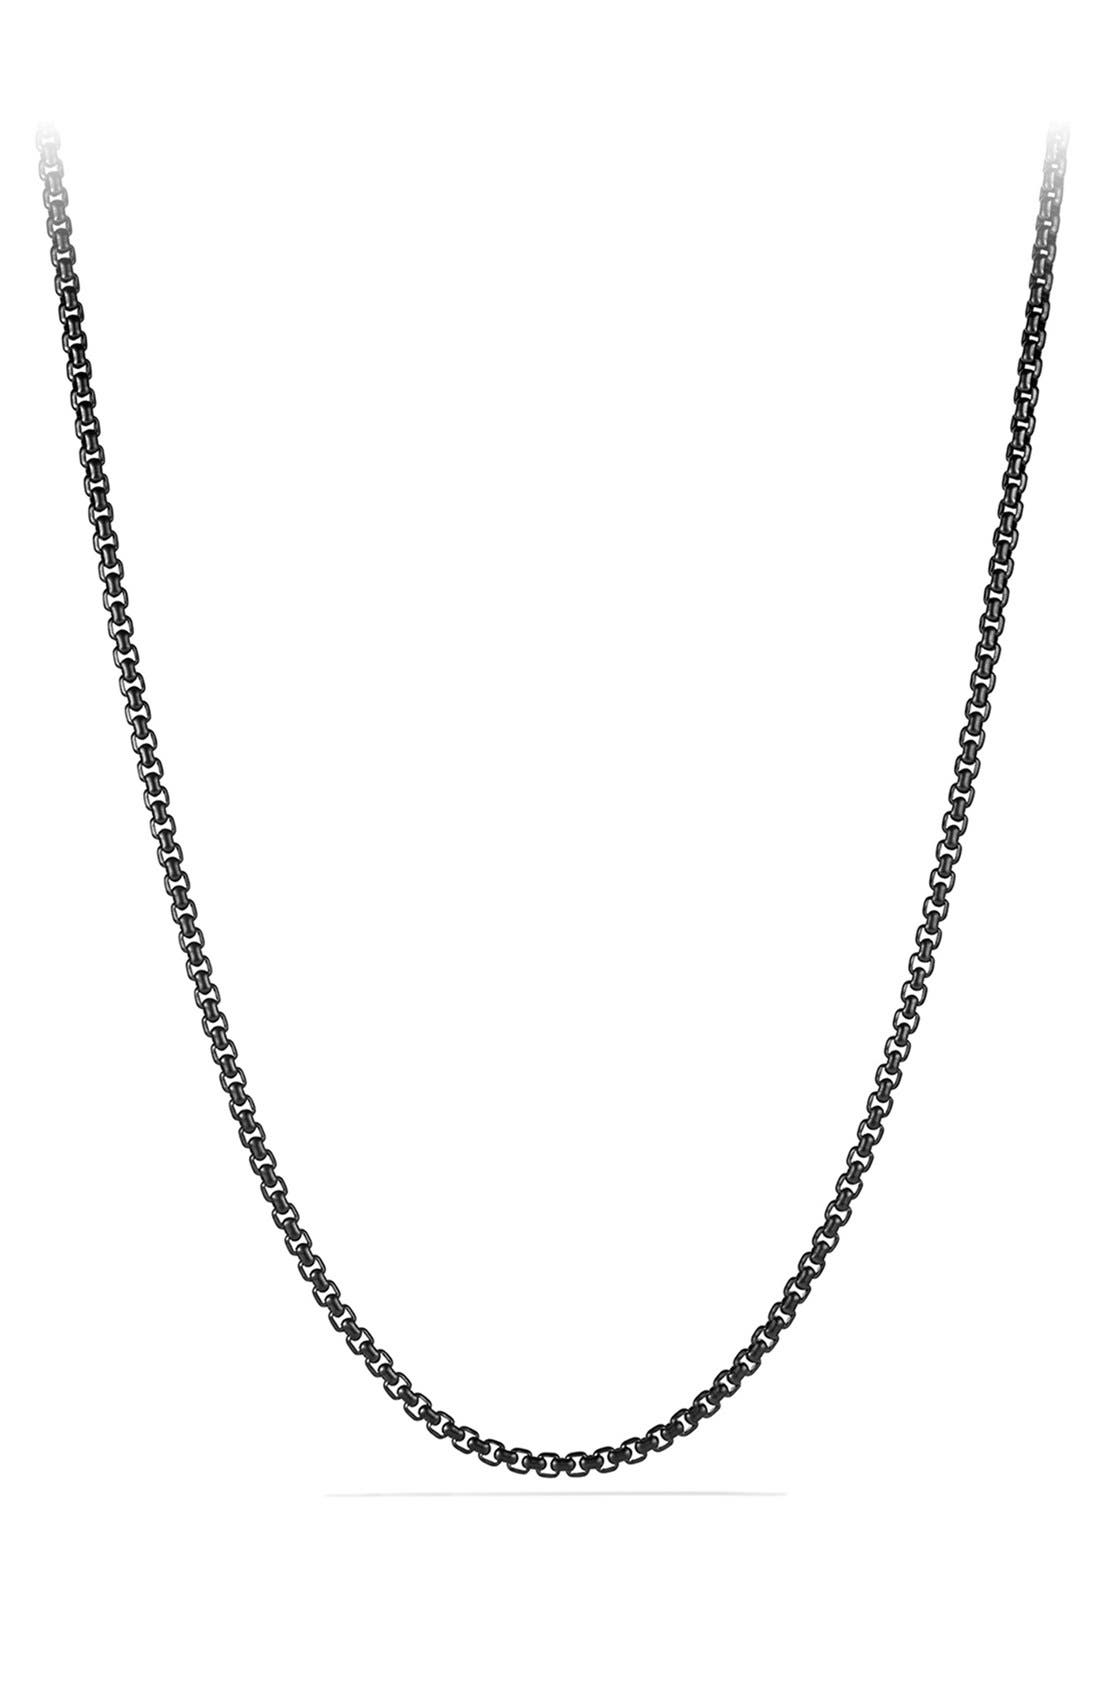 'Chain' Box Chain Necklace,                             Main thumbnail 1, color,                             STAINLESS STEEL